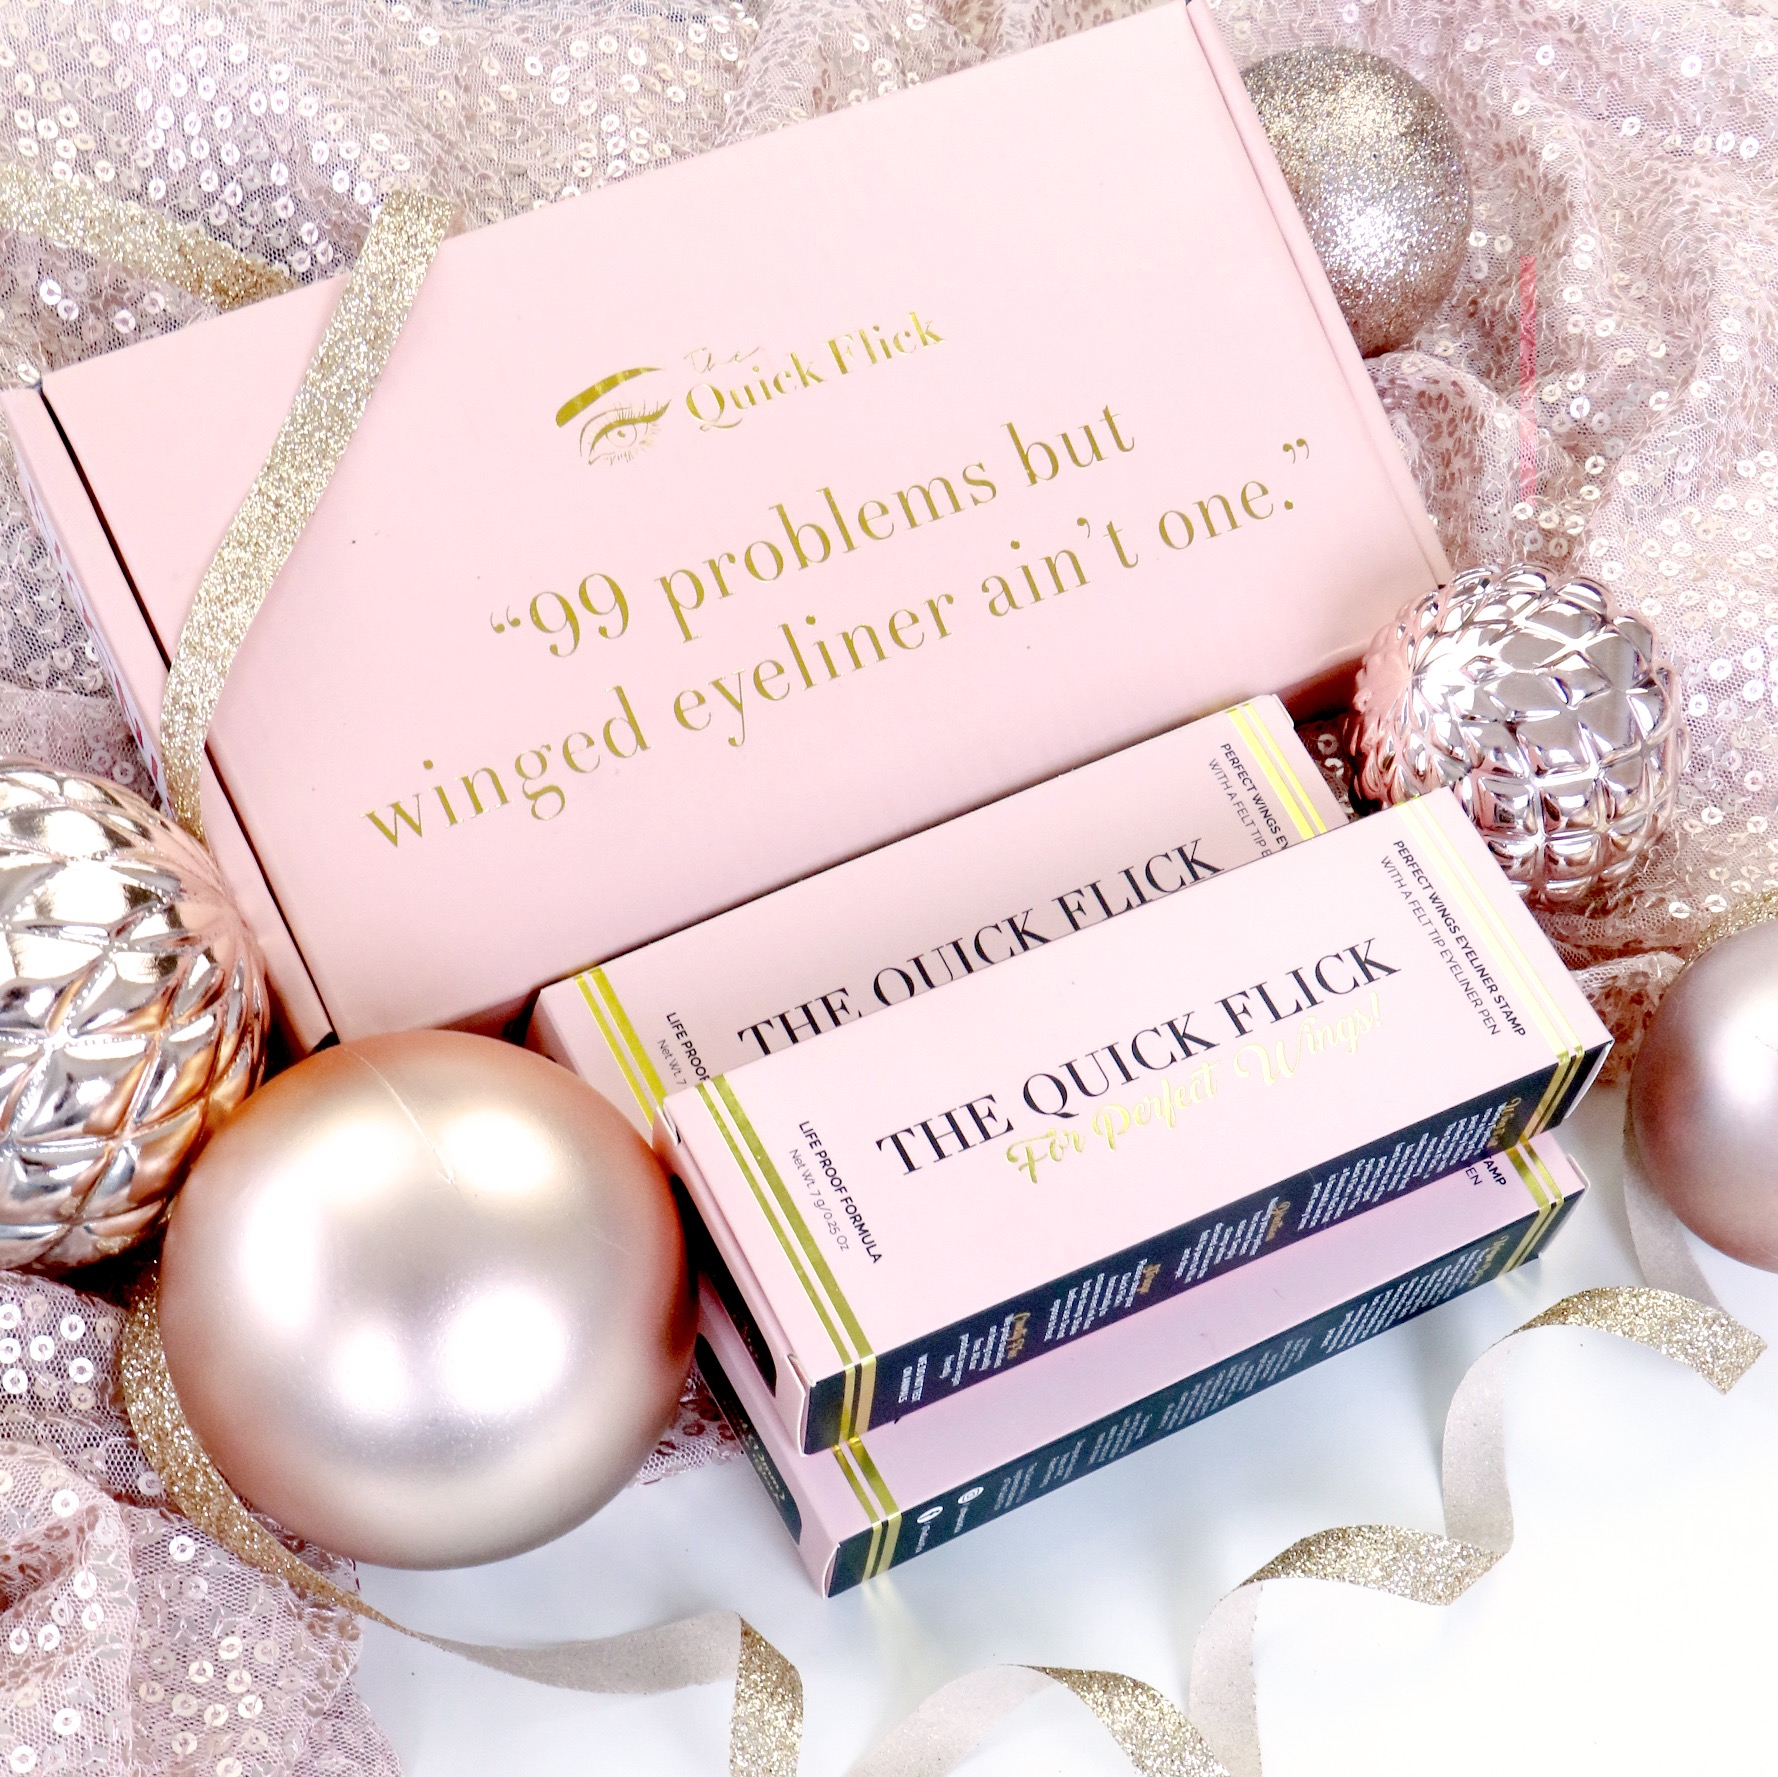 The Quick Flick - Cruelty Free Gift Guide